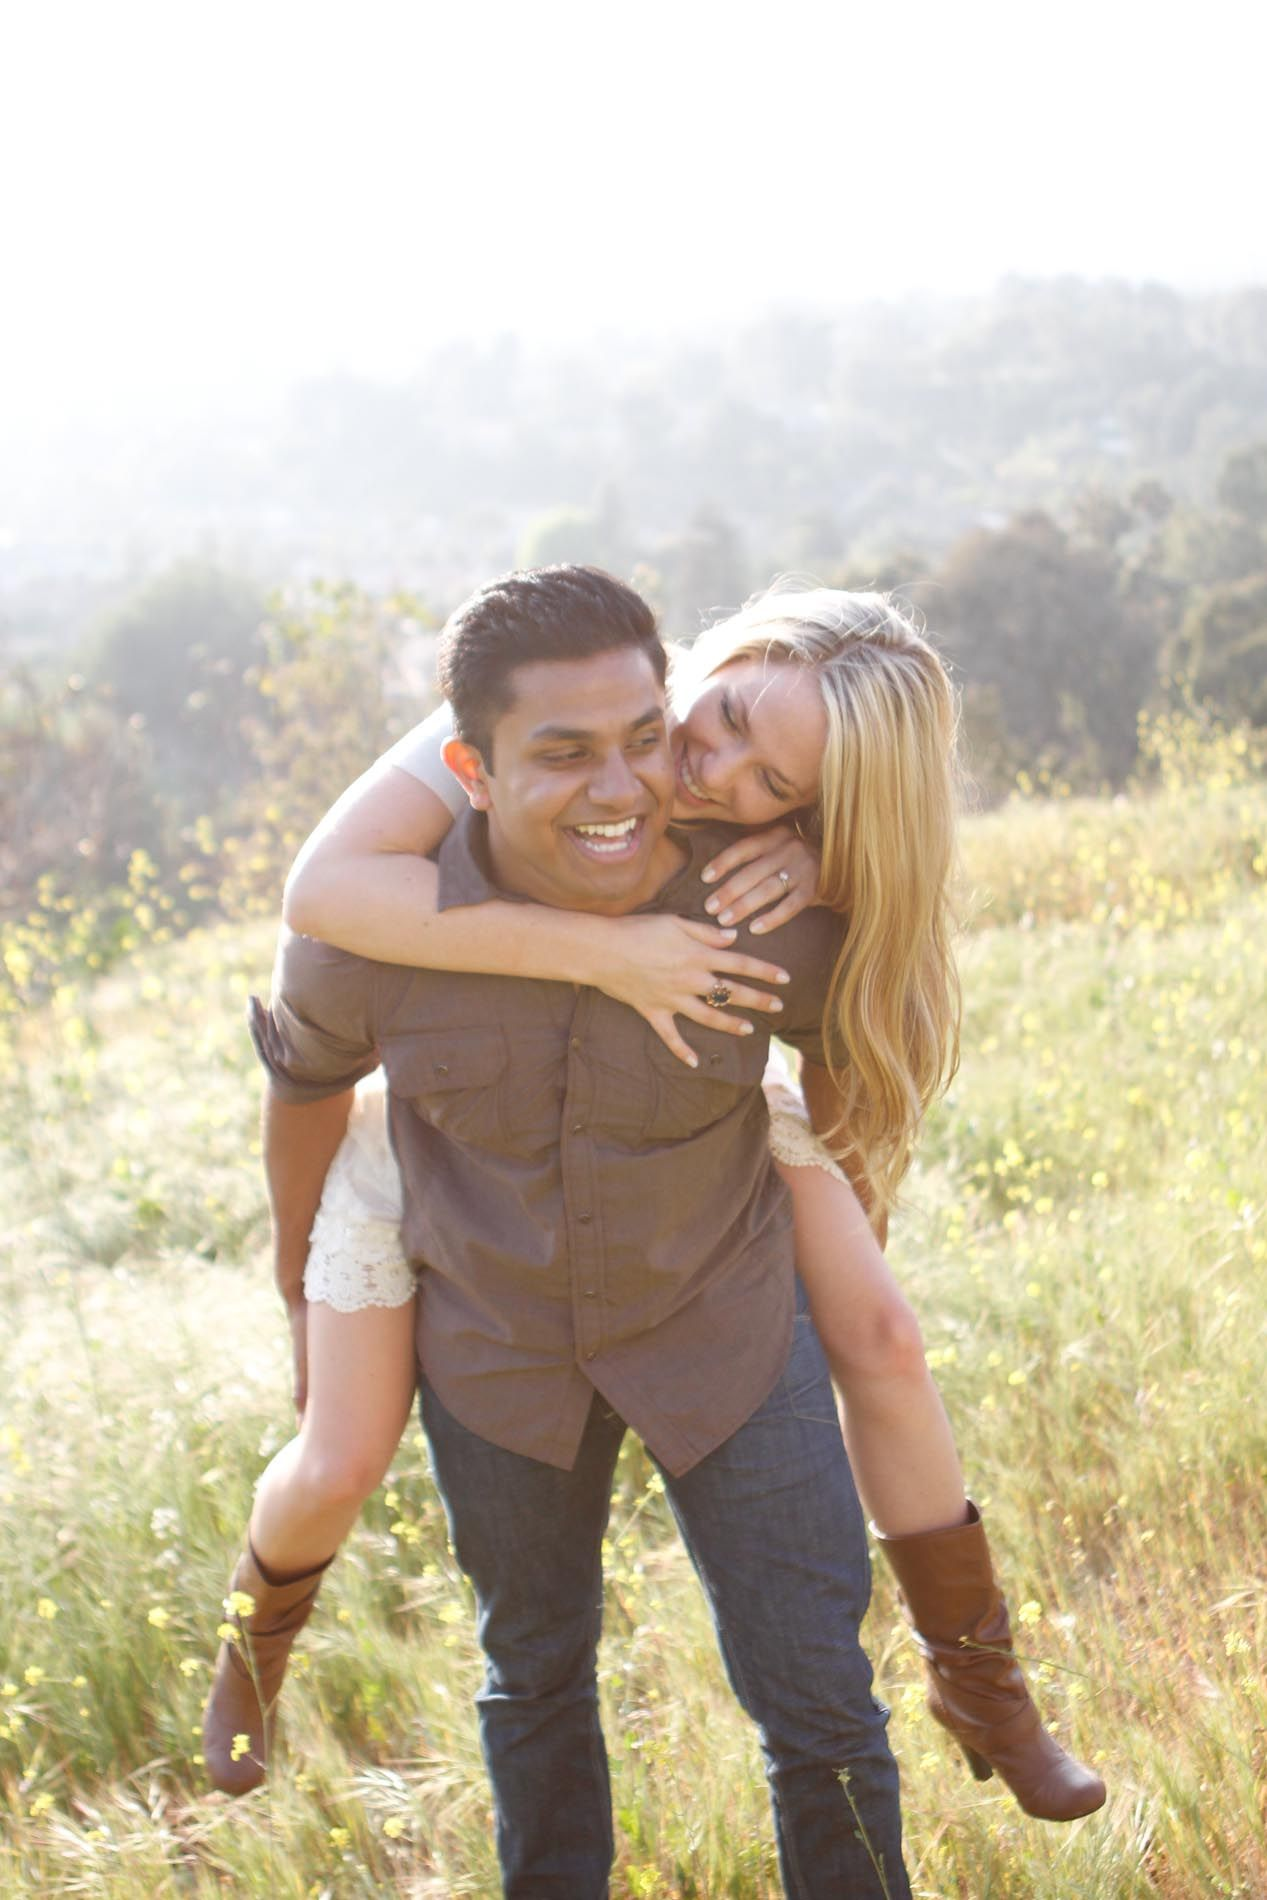 Fall Country Engagement Photo Ideasengagement Shoot Ideas Tips And Tricks Wedding Compass Blog Rs2K2I3Z 1,267 1,900 Pixels